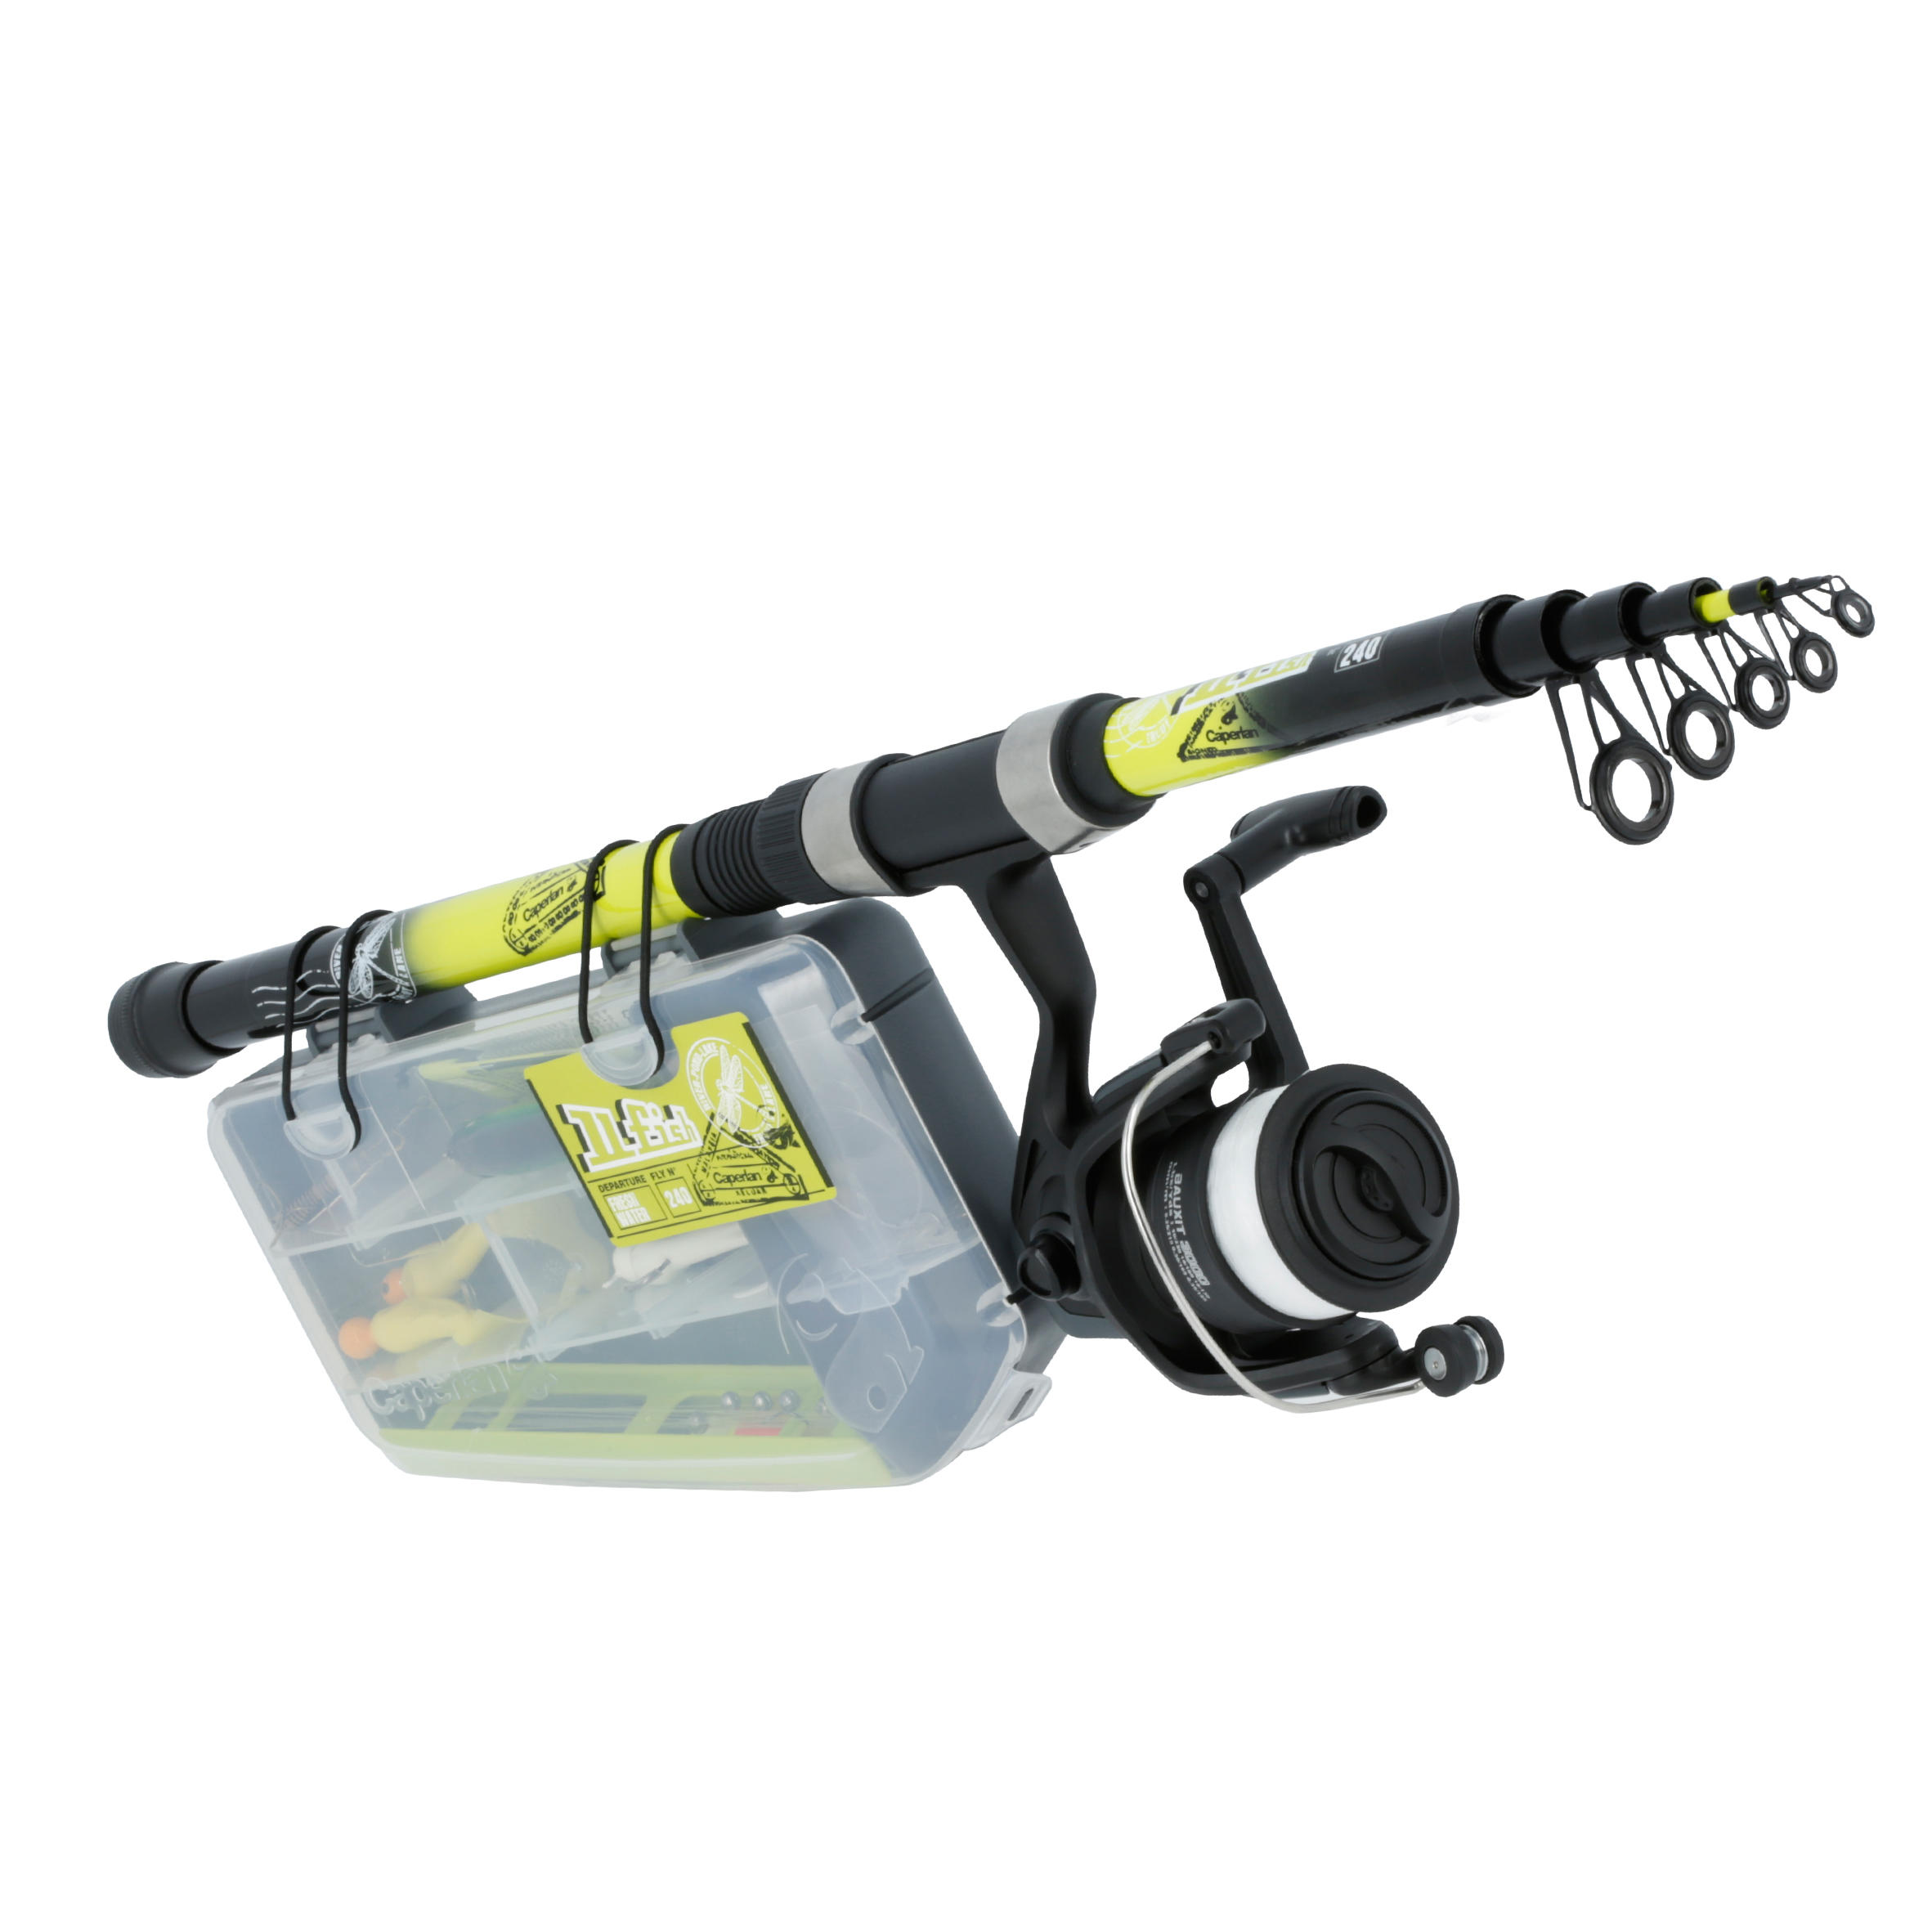 Kit descubrimiento de pesca UFISH FRESHWATER 240 New